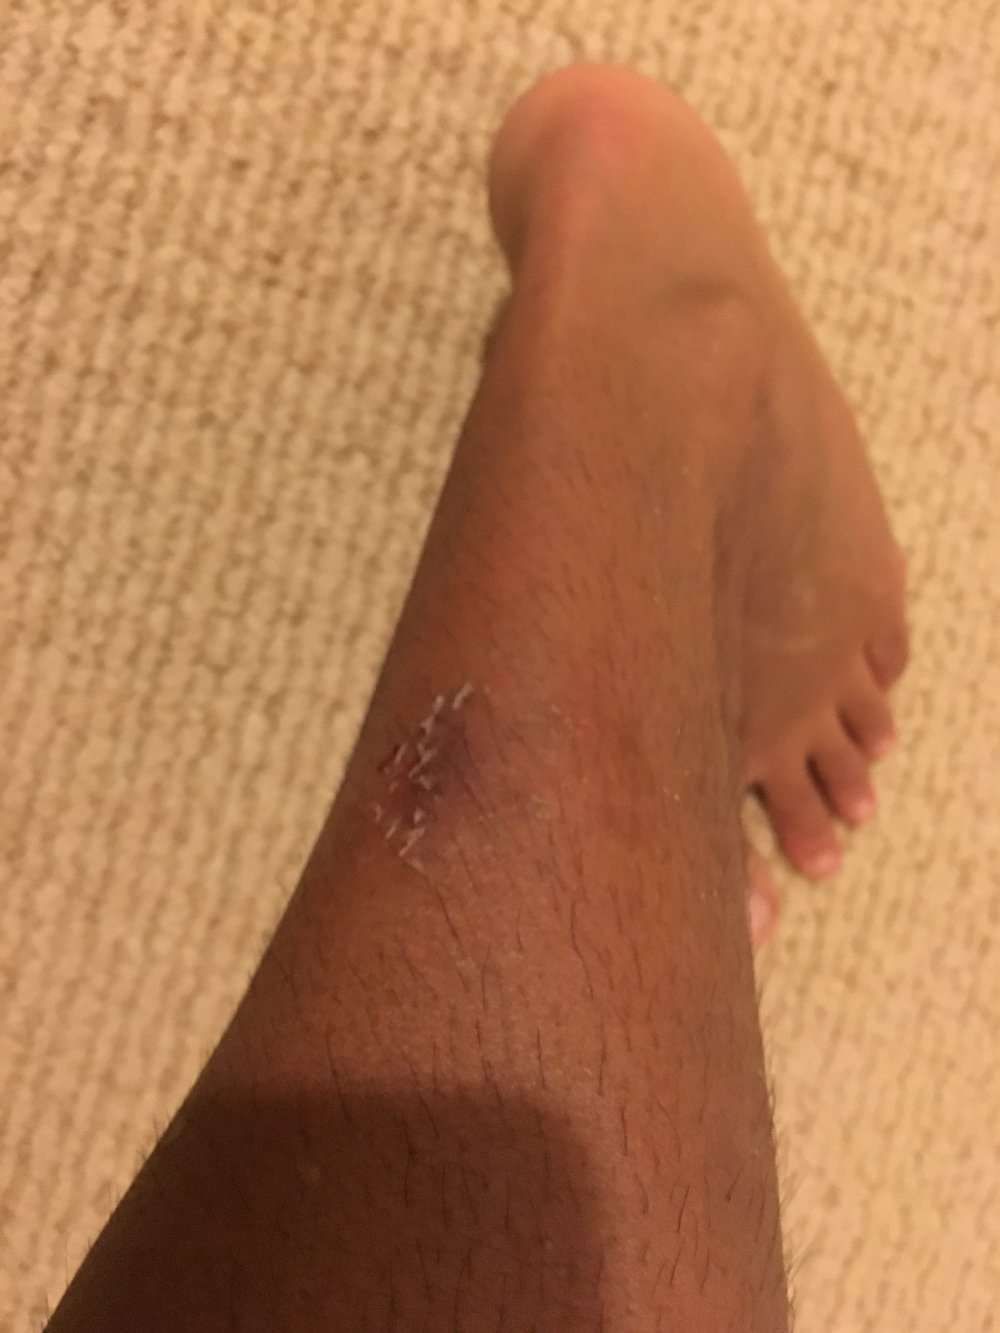 Surfed in some semi sketchy evening water, trying not to get bit by anything.   End up coming home and neighbors dog got loose and took a cheap shot and bit me while I was facing away and in the dark.